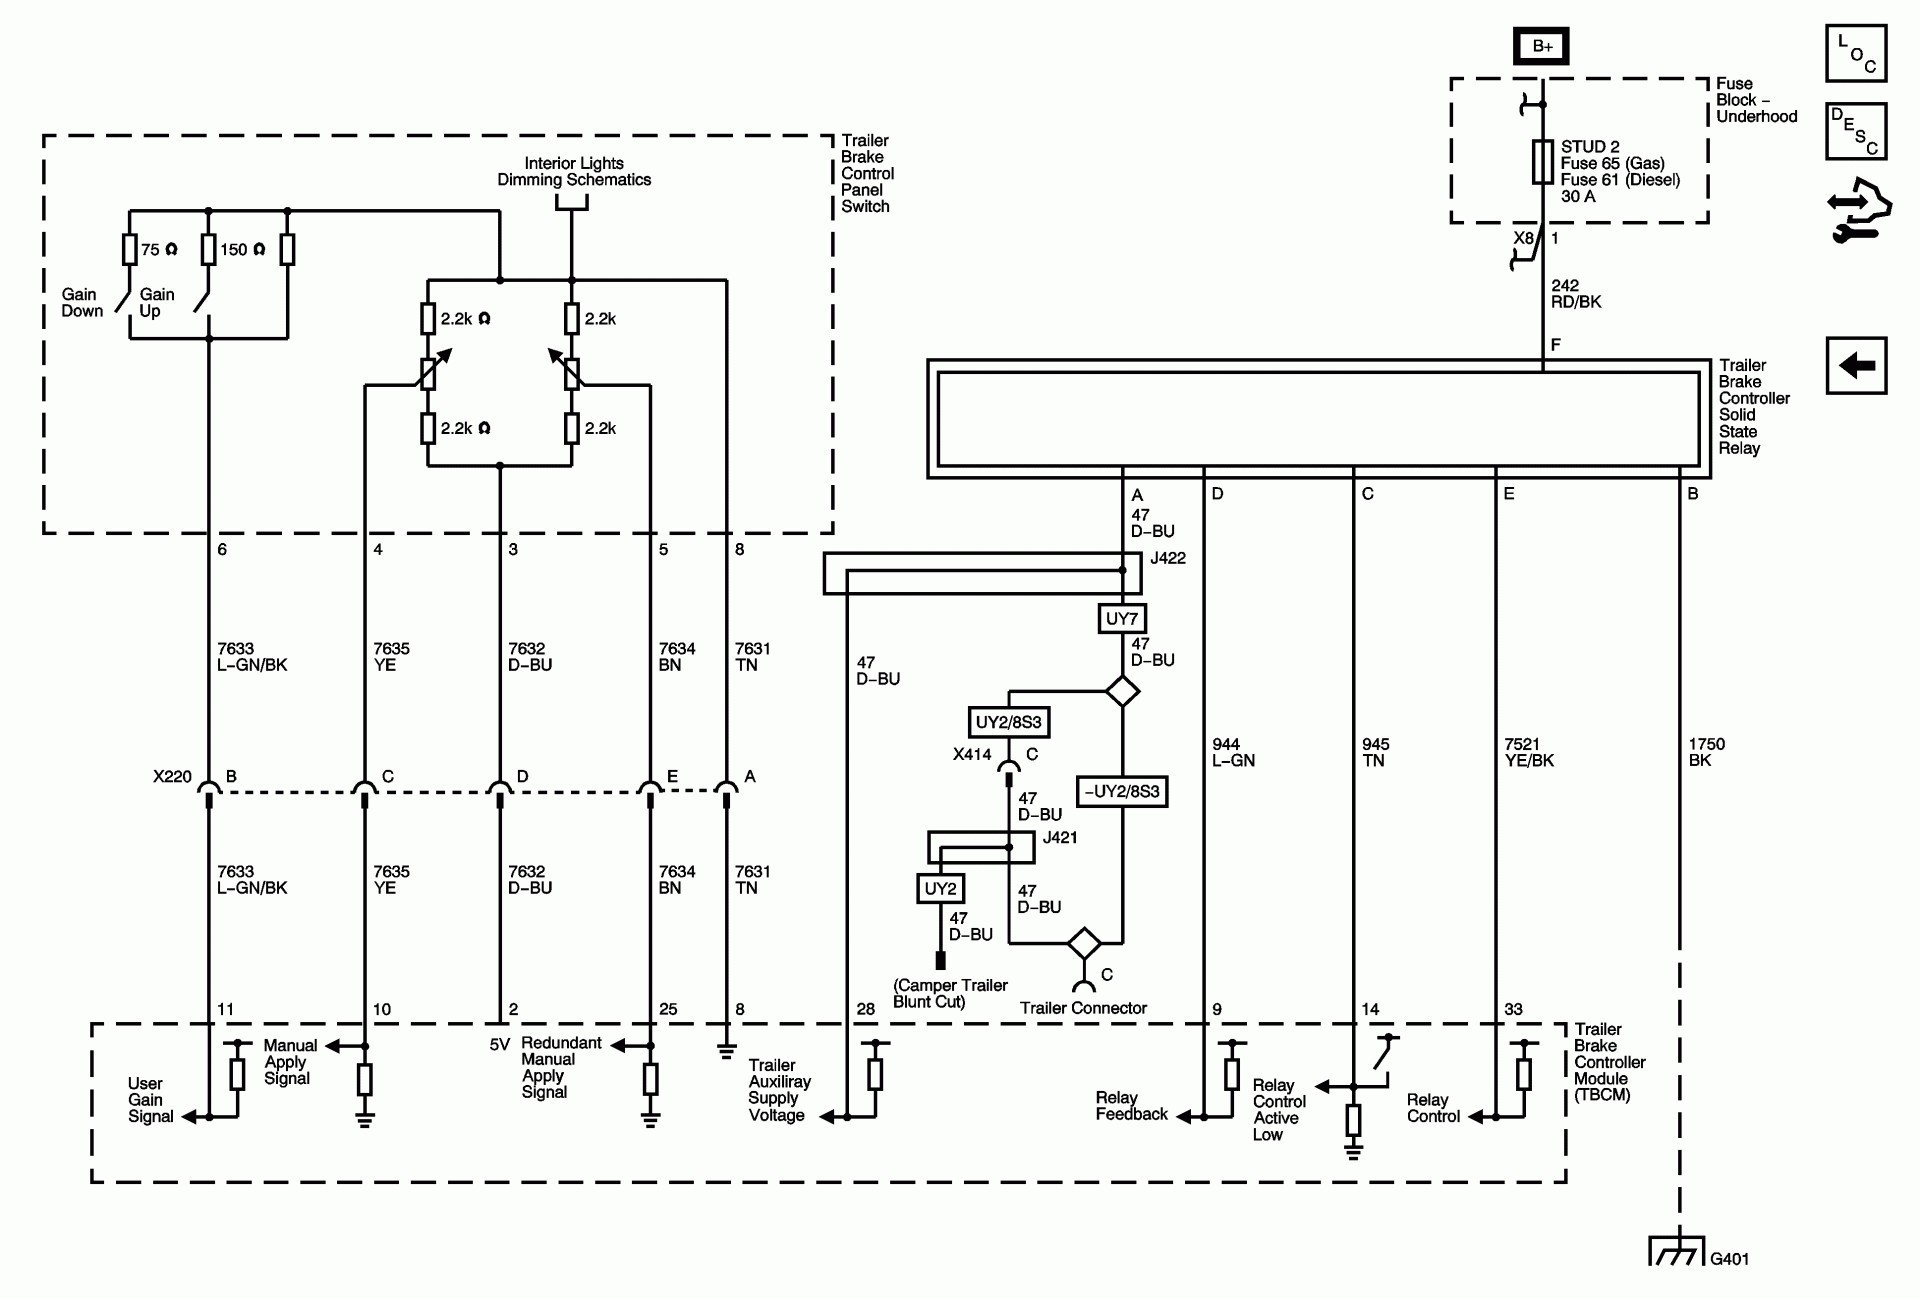 24EA Reese ke Controller Wiring Diagram | Wiring Resources on reese 5th wheel hitch, reese hitch accessories, reese cabinets, reese receivers,